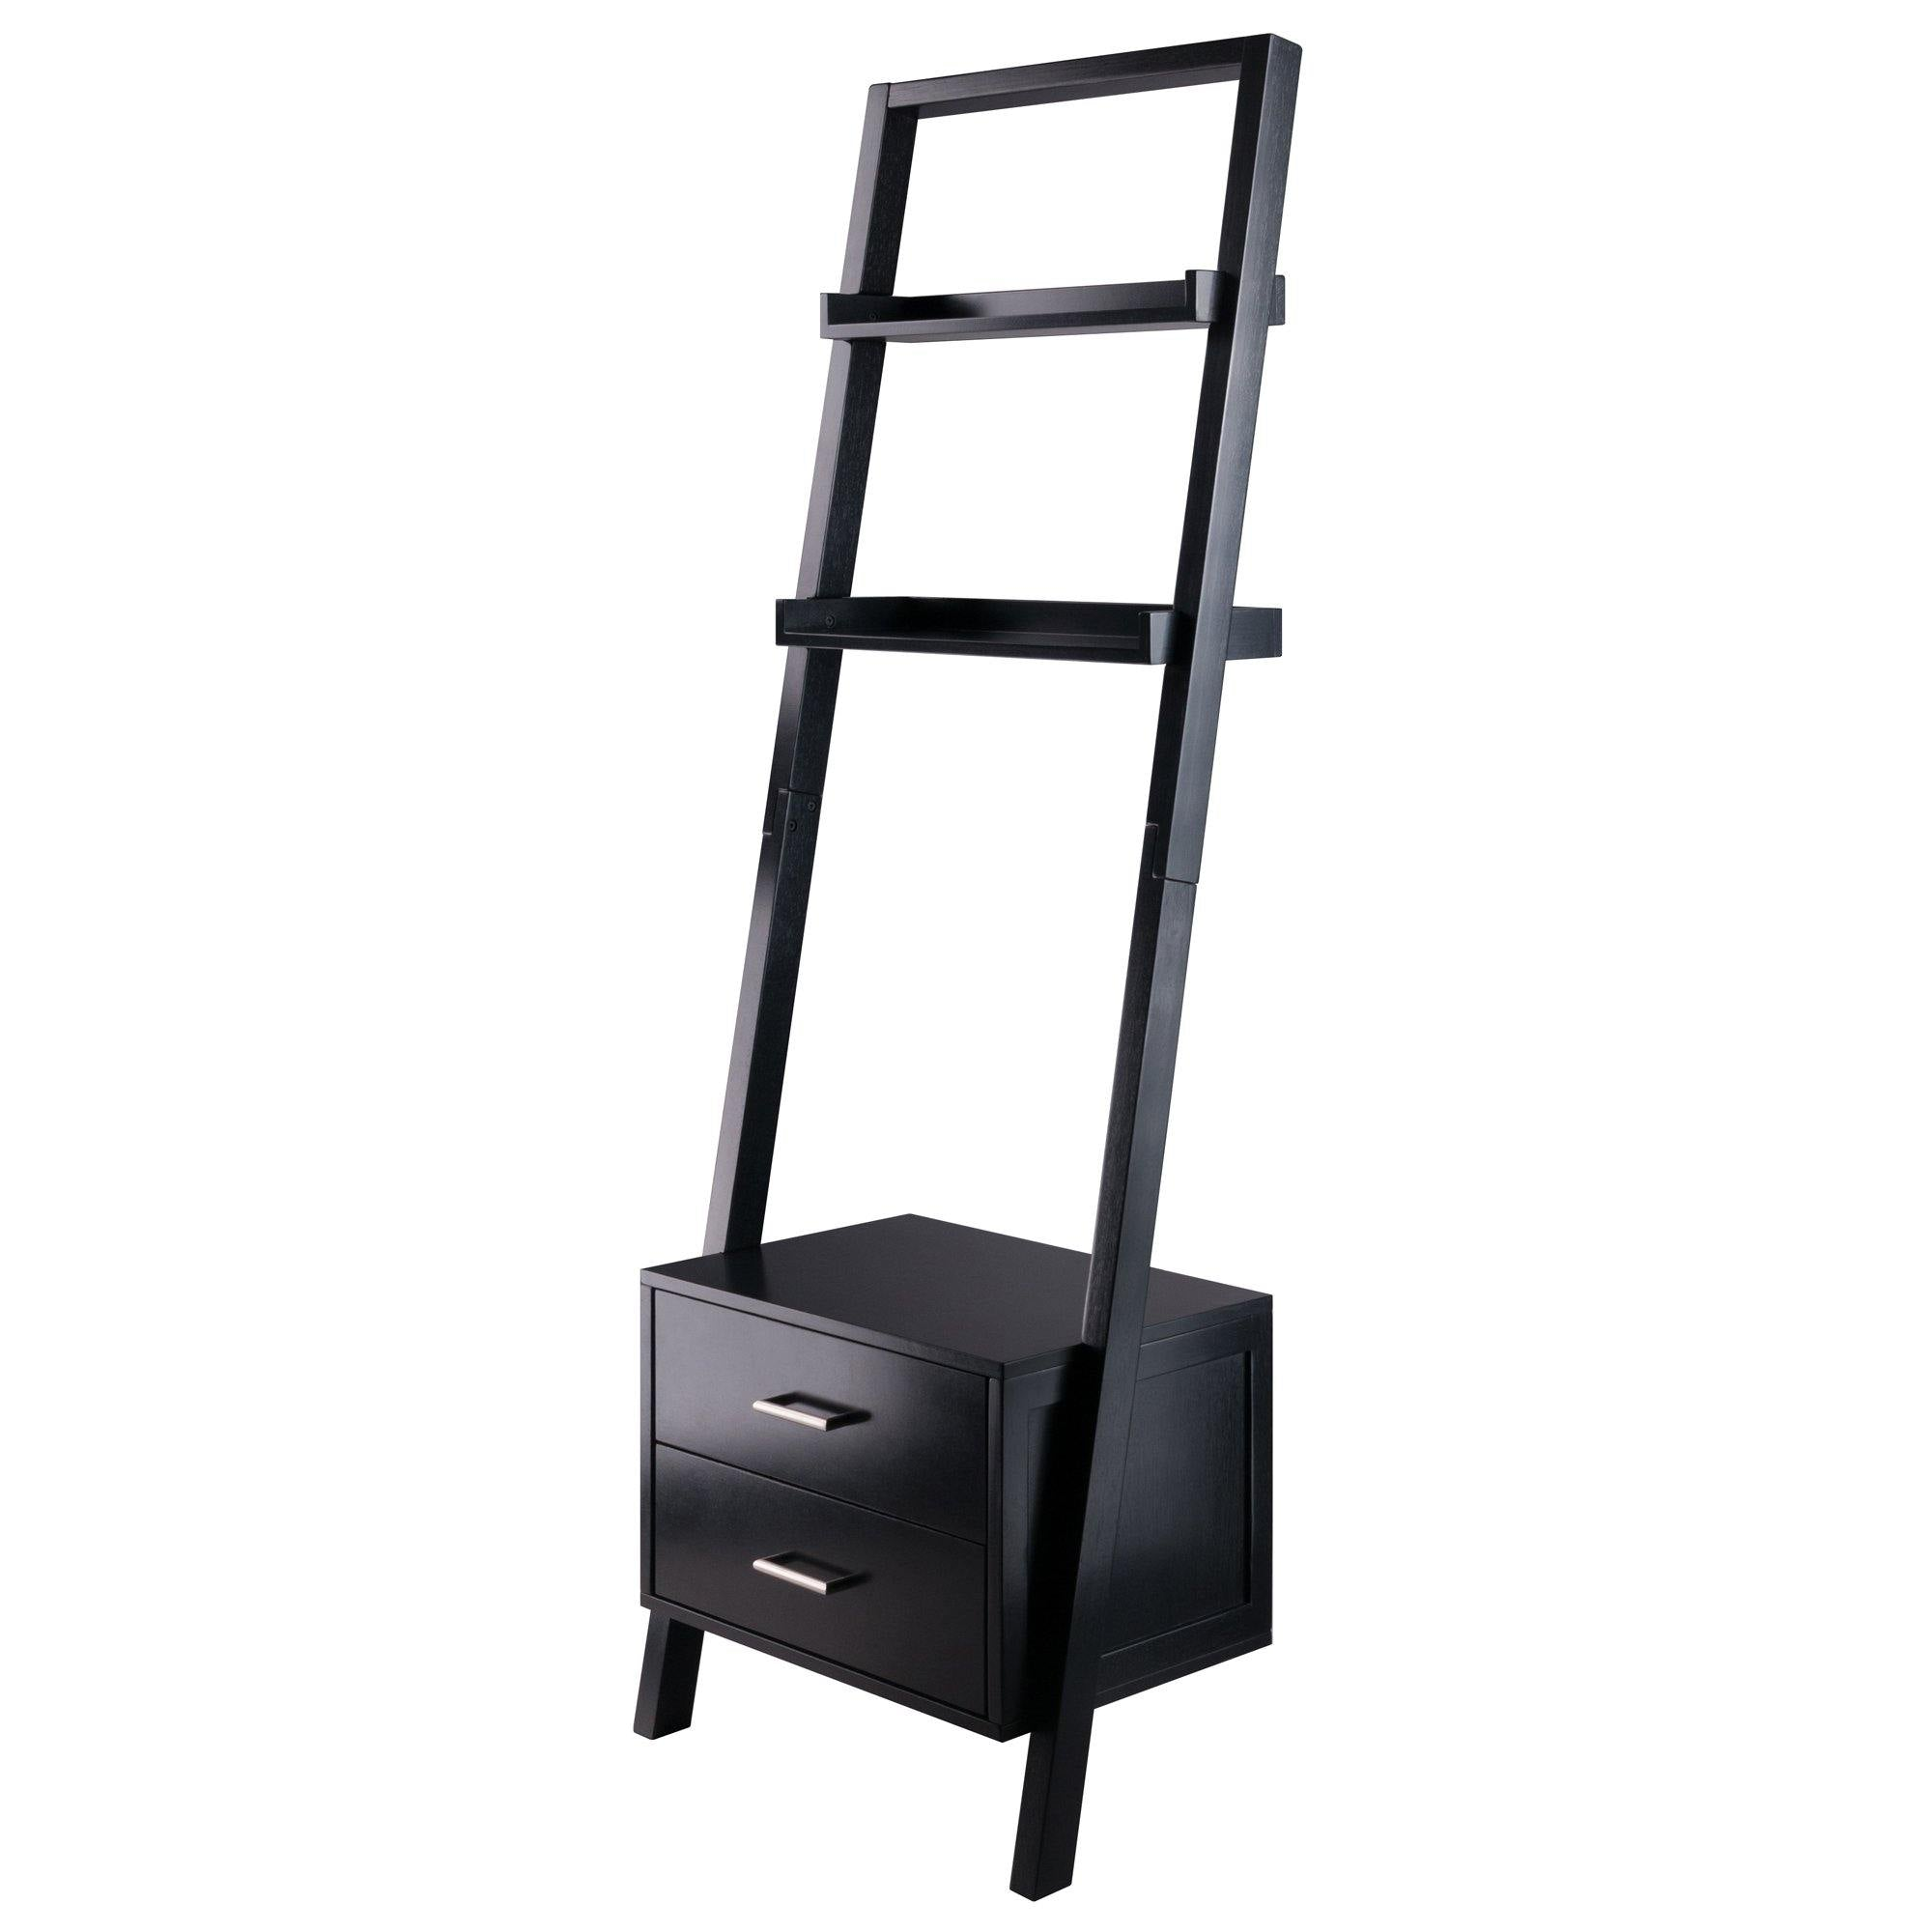 Bellamy Leaning Shelf with Storage, Black - My USA Furniture